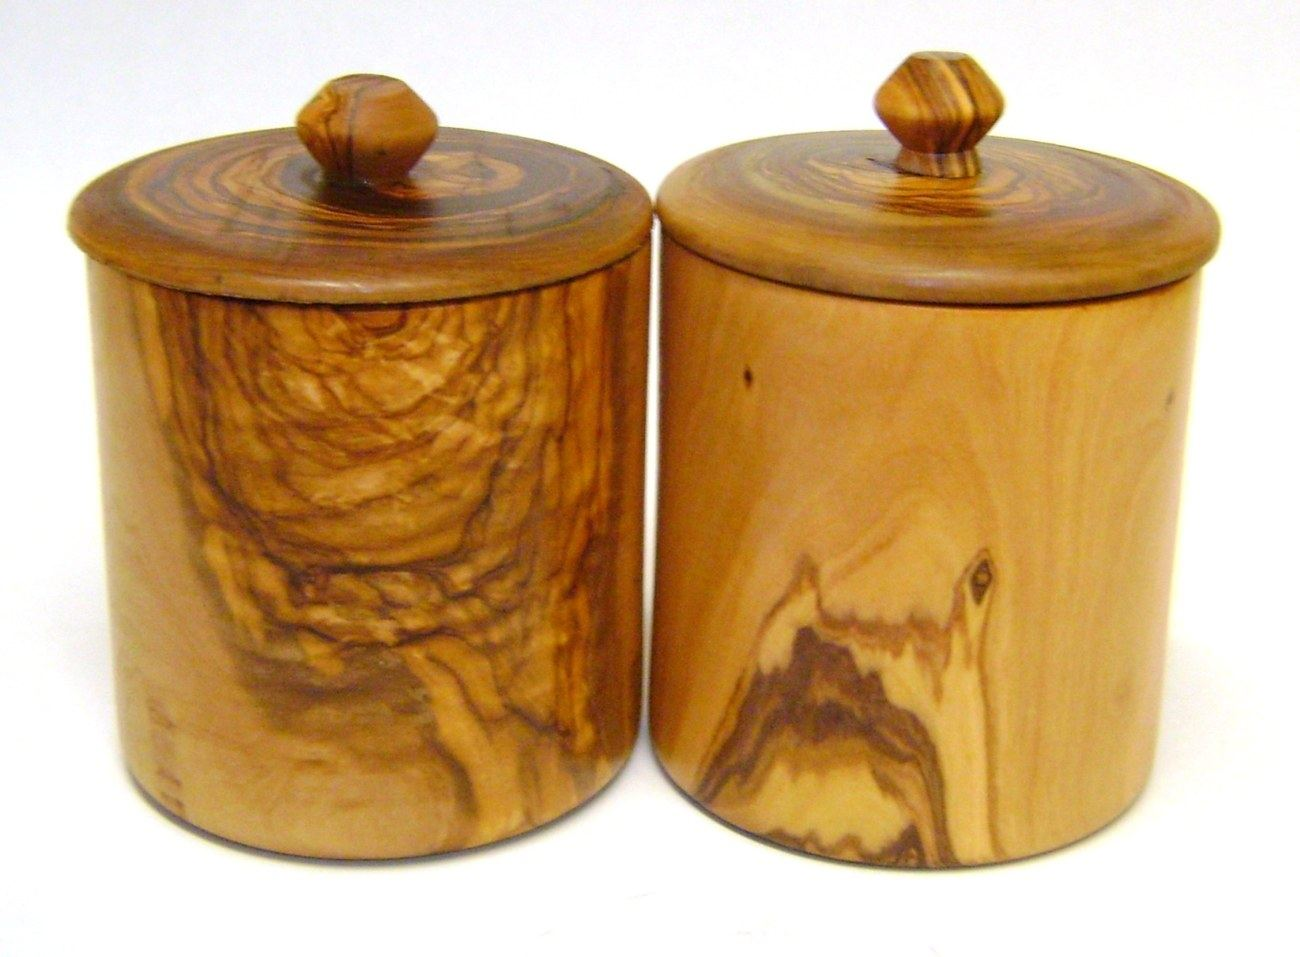 Olive Wood Coffee U0026 Sugar Containers Set Of 2   Handmade Set Of Tall Jars